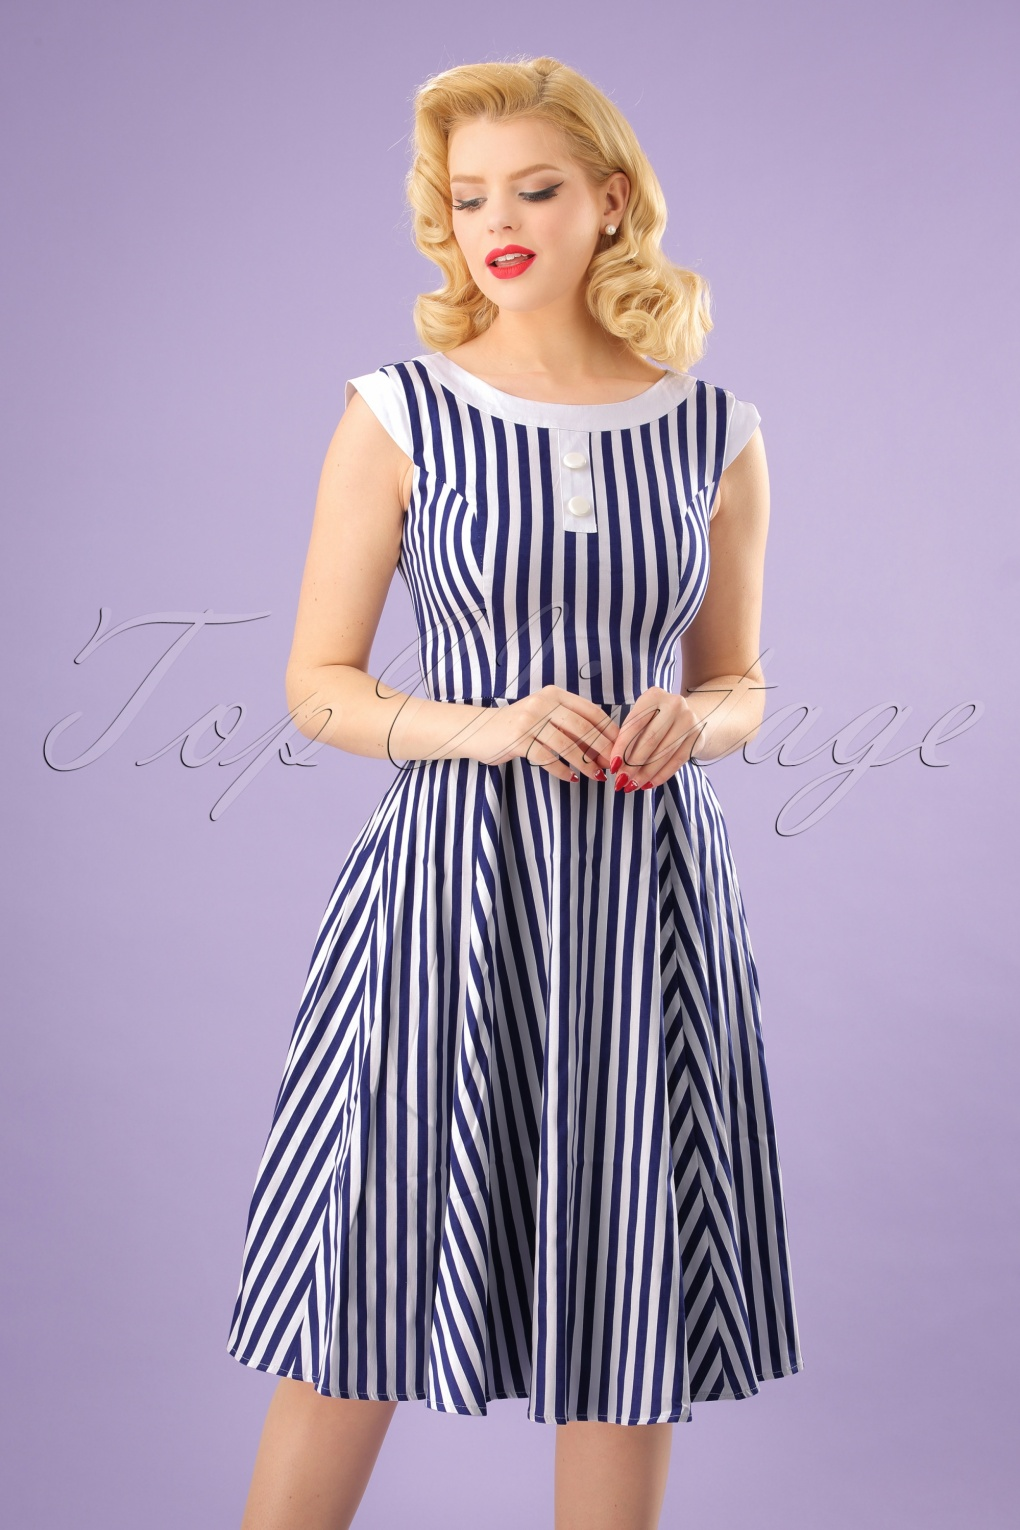 Sailor Dresses, Nautical Dress, Pin Up & WW2 Dresses 50s Hepburn Stripes Swing Dress in Blue and White £46.39 AT vintagedancer.com